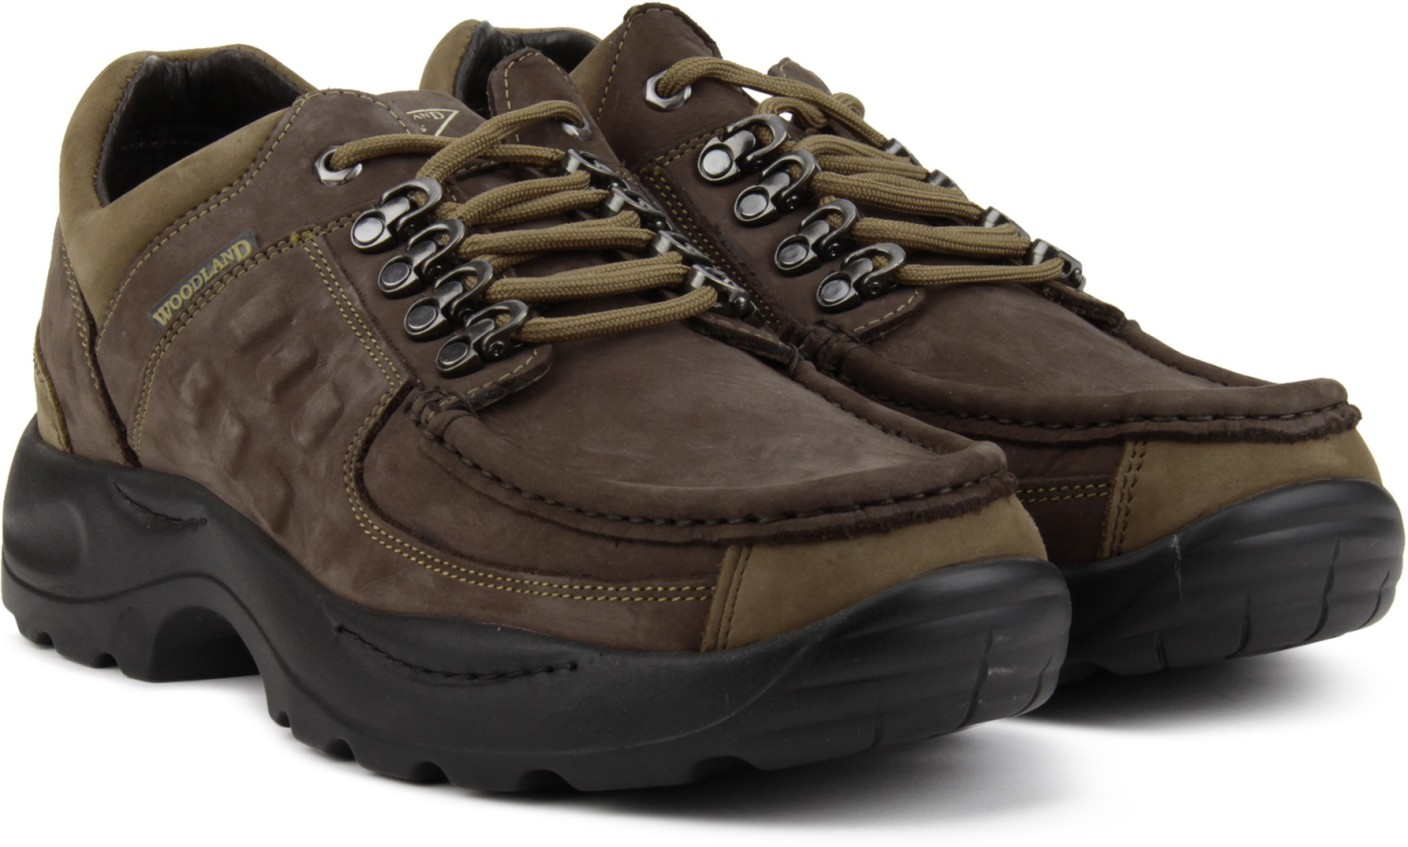 Woodland Leather Outdoor Shoes For Men - Buy RB BROWN ...